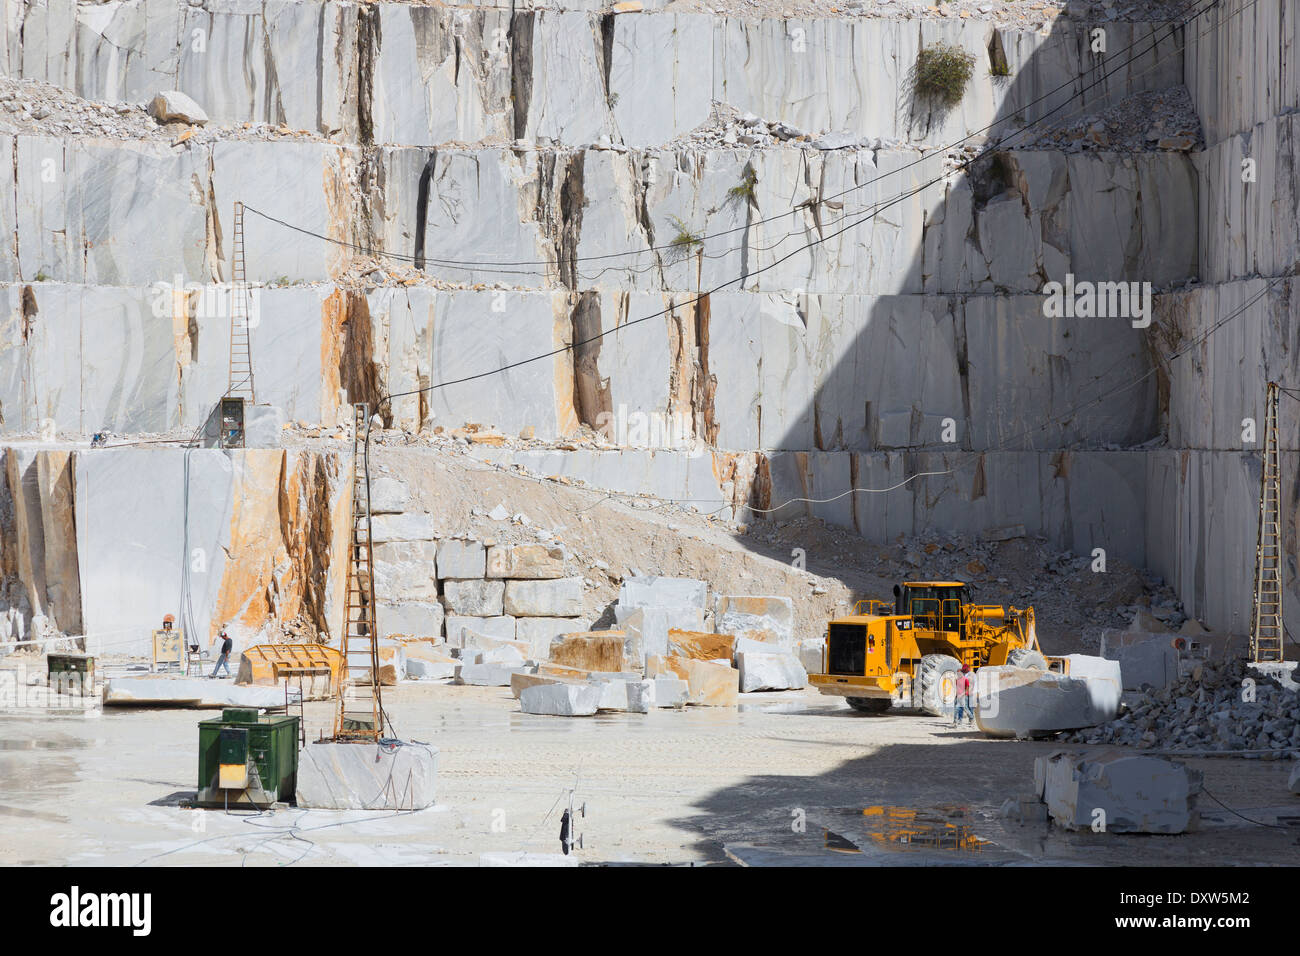 Blocks of marble mined in marble quarry in the Apuan Alps near Carrara, Italy - Stock Image